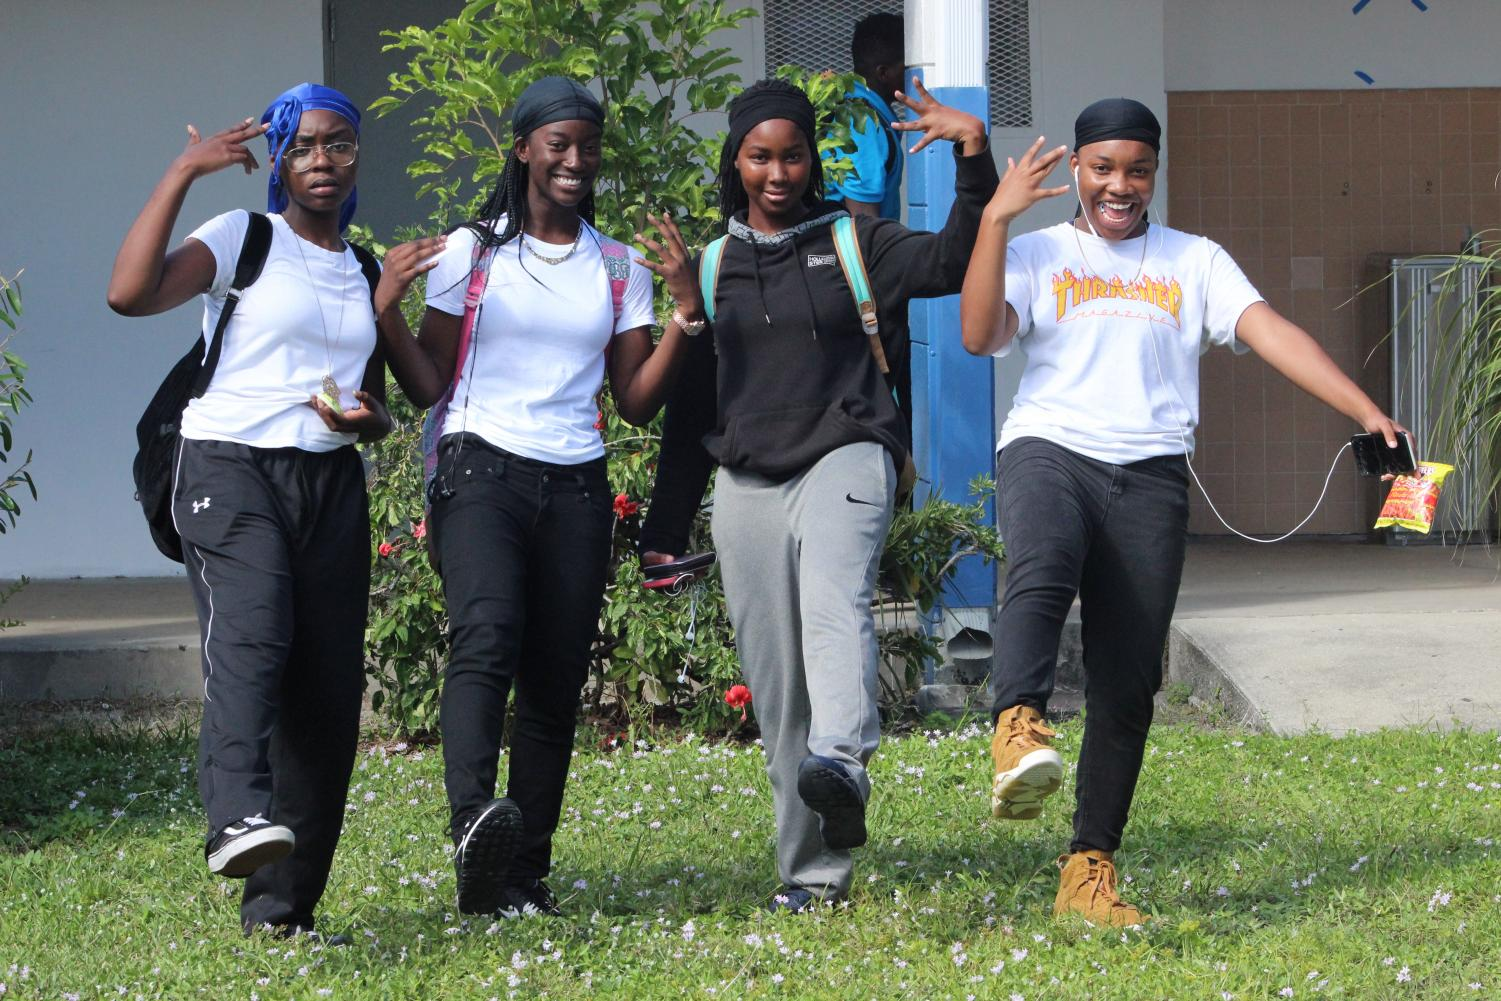 GIRLZ ll MEN: The second day of Spirit Week was initially supposed to be